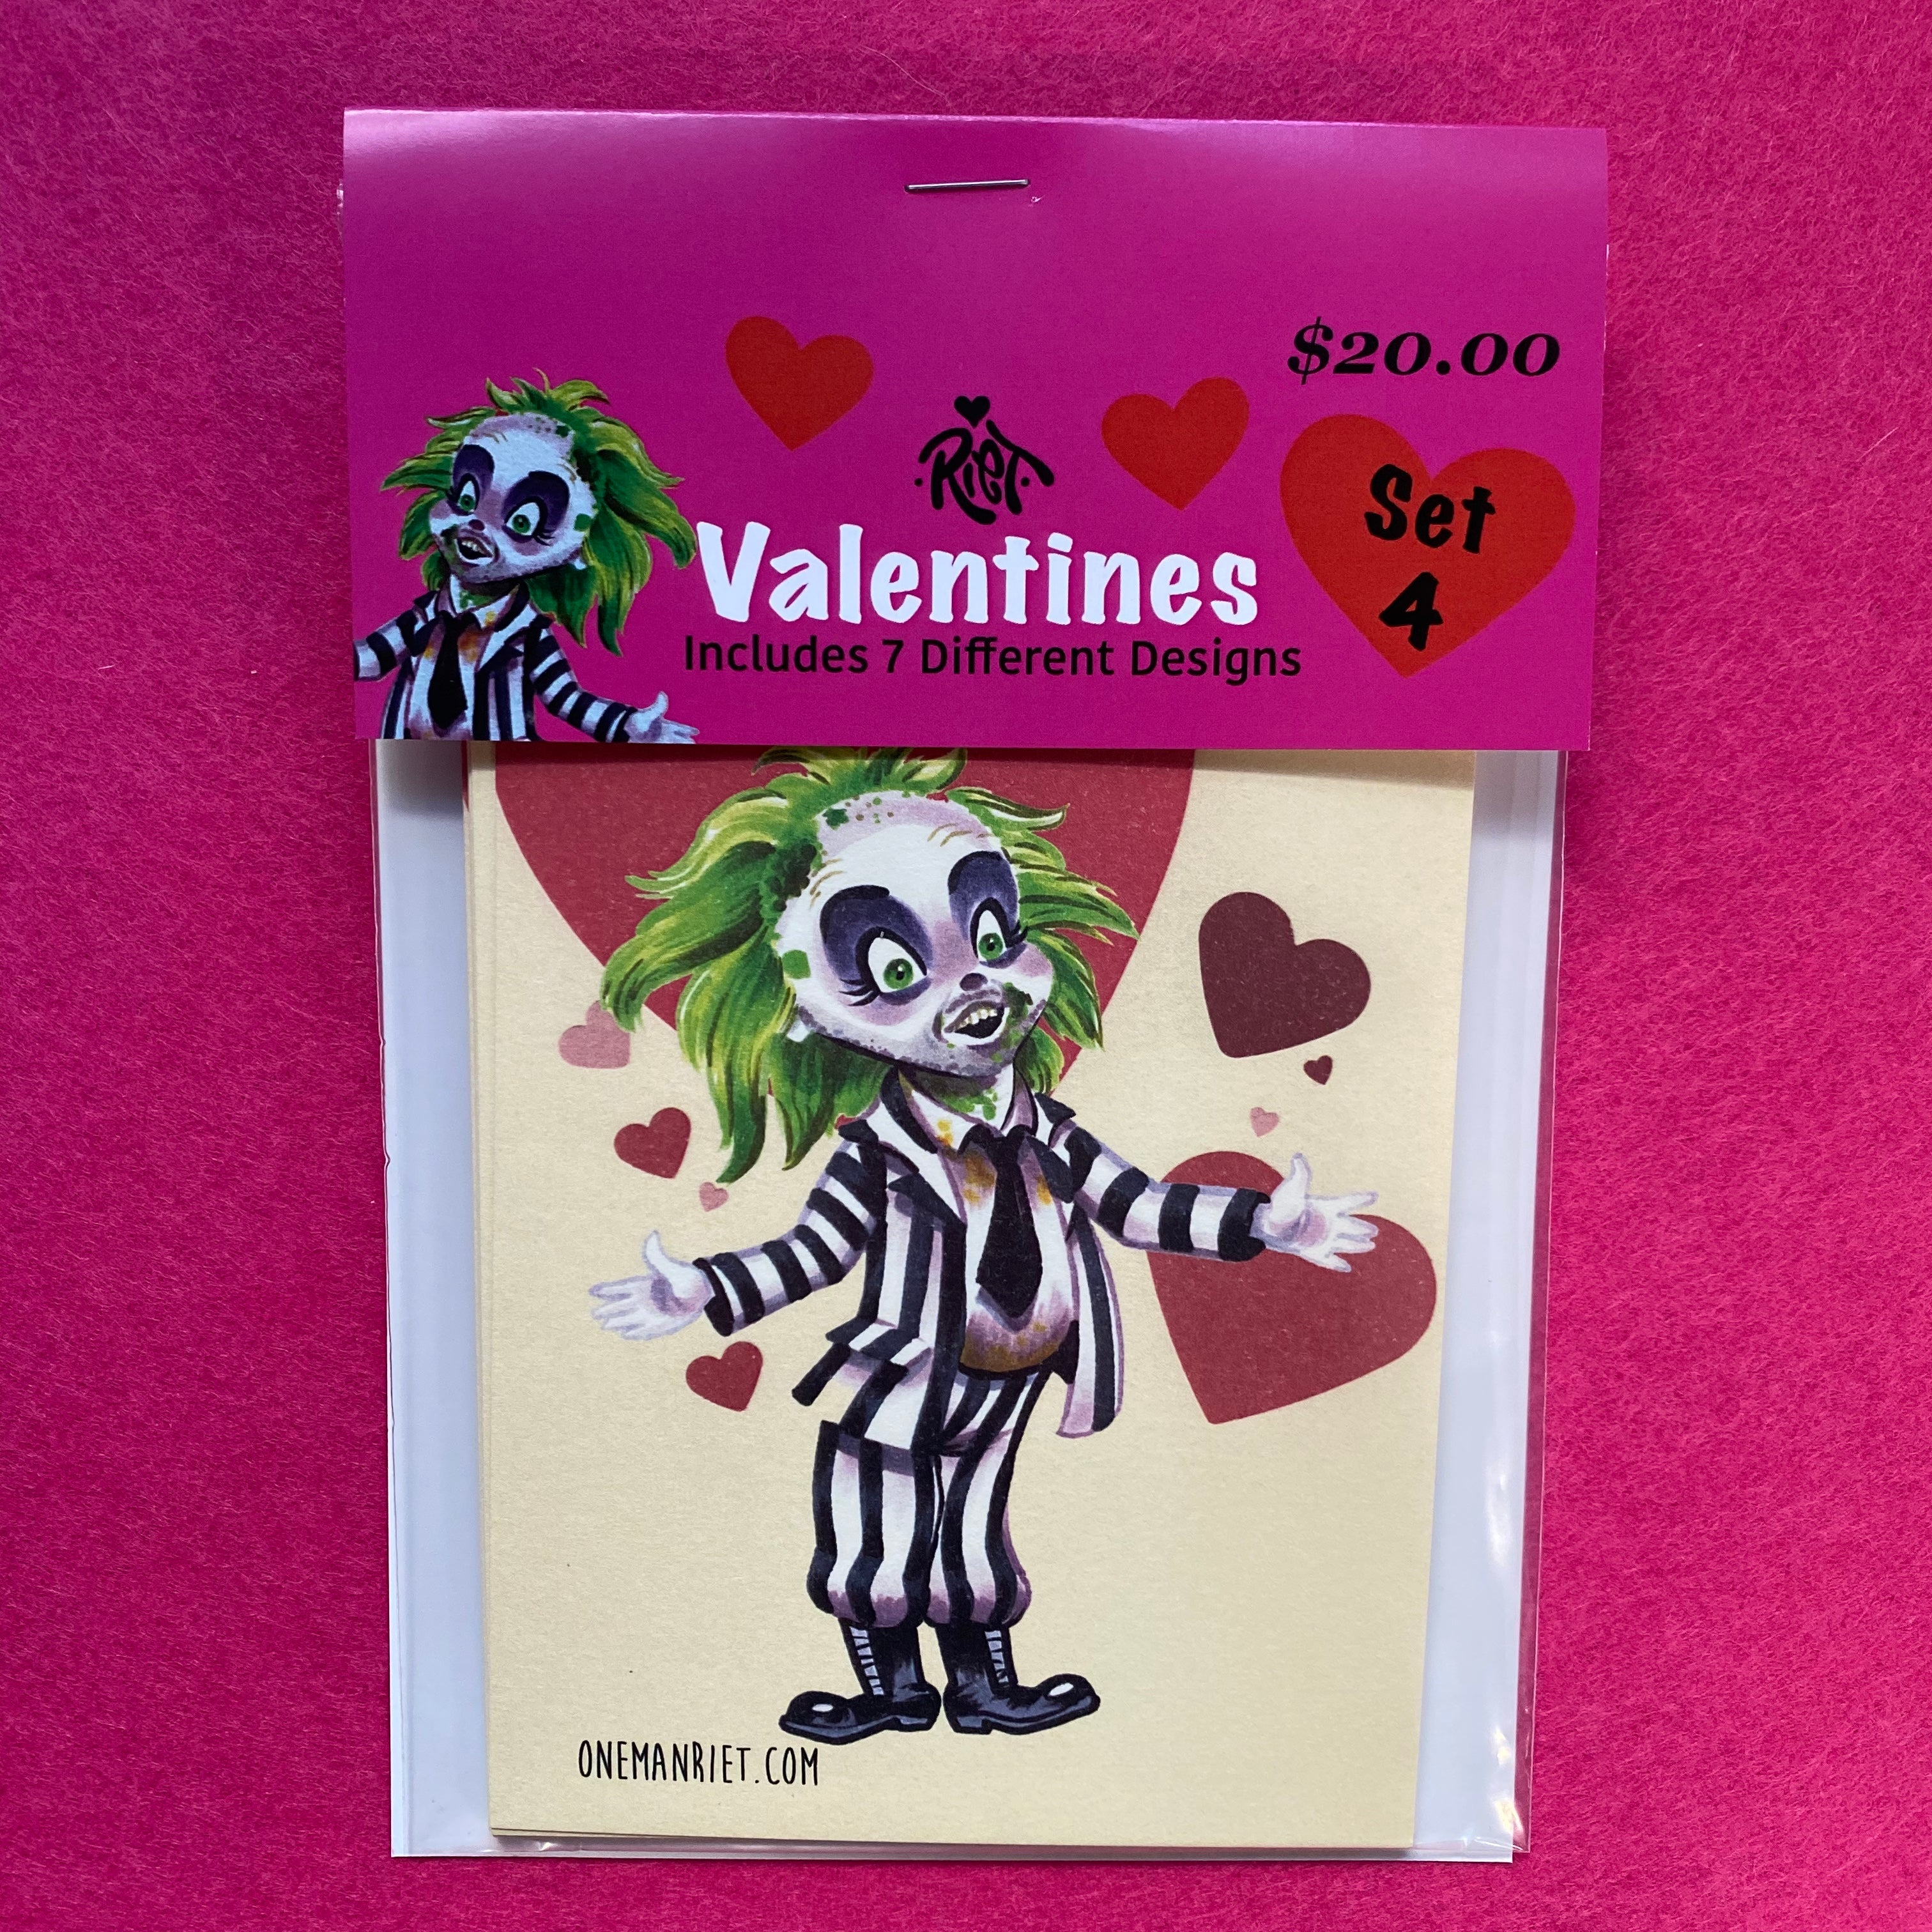 Set 4: Horror Valentine Cards